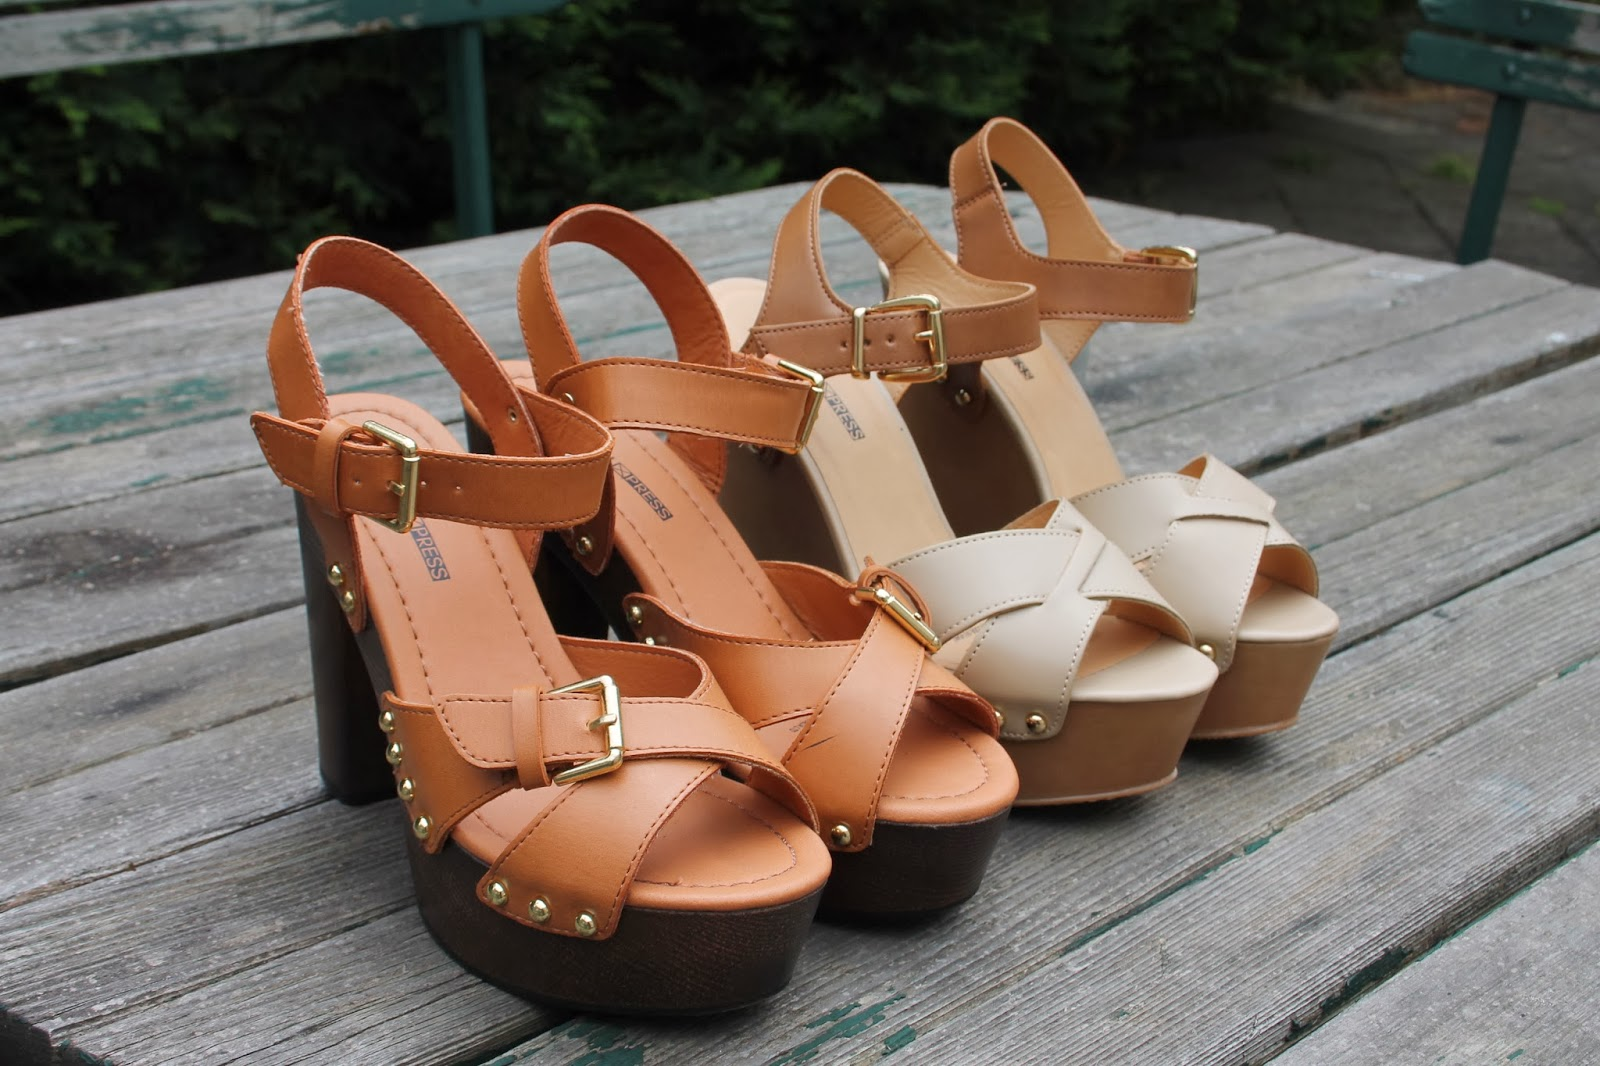 Women's sandals at kmart - I Had To Go Up A Size In The Wedges Right As The Vamp Was Quite Stiff And Tight Both Shoes Are Extremely Light And Stable The Sandals Left Have No